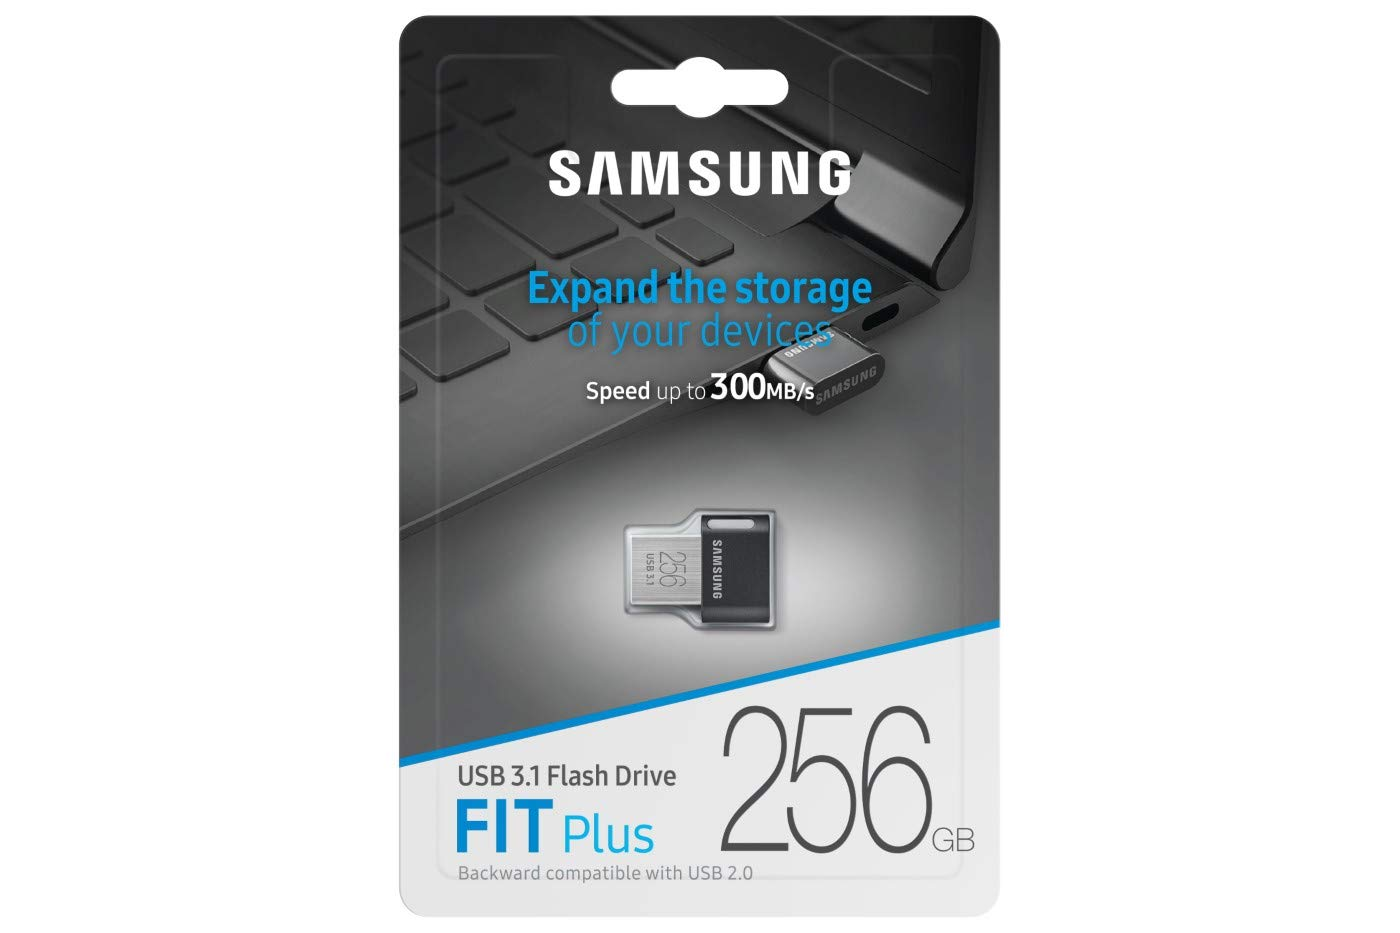 Oryginalny Pendrive Samsung Fit Plus 256GB.